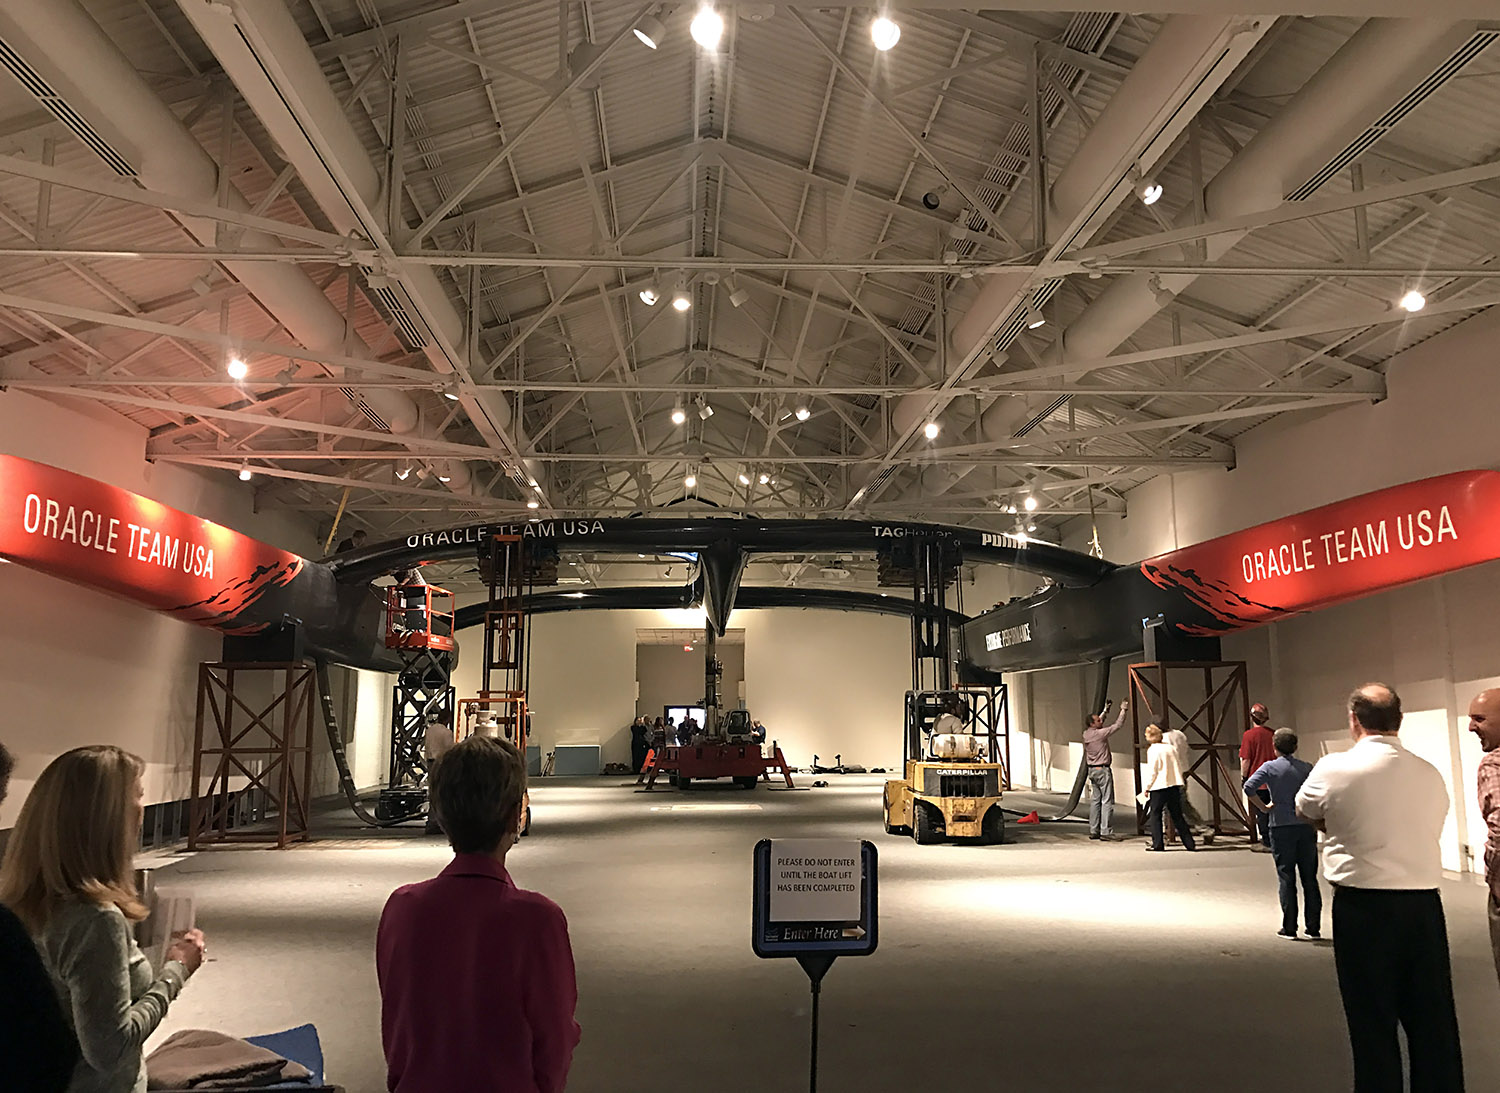 The Speed and Innovation exhibit at the Mariners' Museum in Newport News, VA. Photo courtesy of the Mariners' Museum